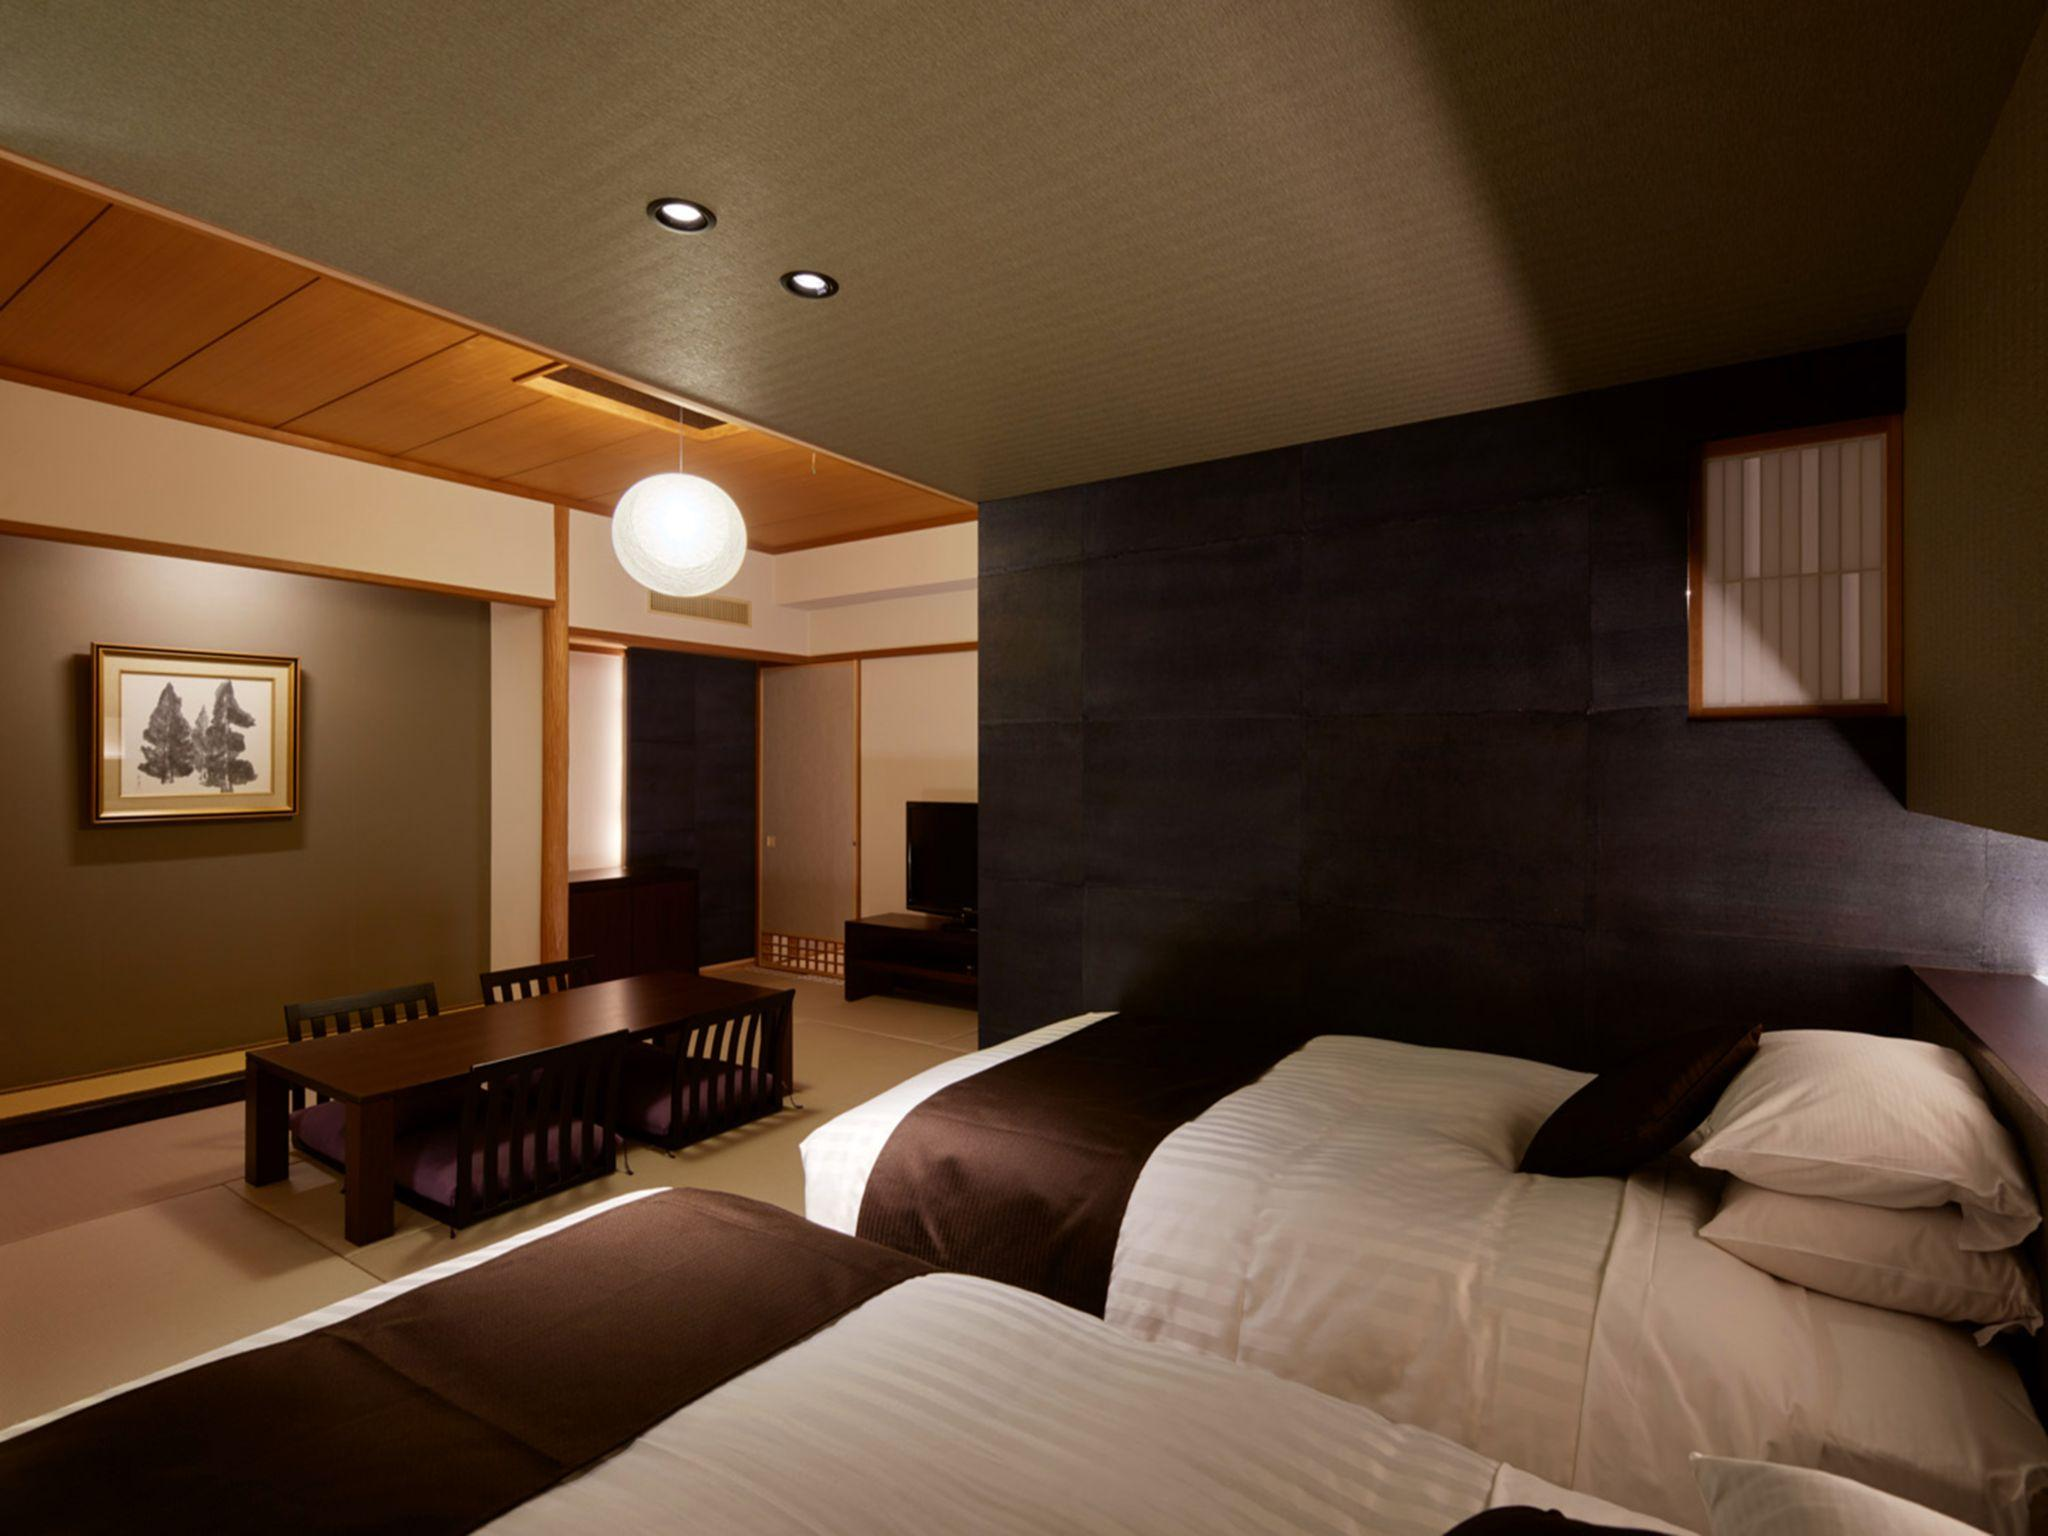 Habitación de estilo japonés occidental para 5 personas ‒ No fumadores (Japanese Western Style Room for 5 People - Non-Smoking)